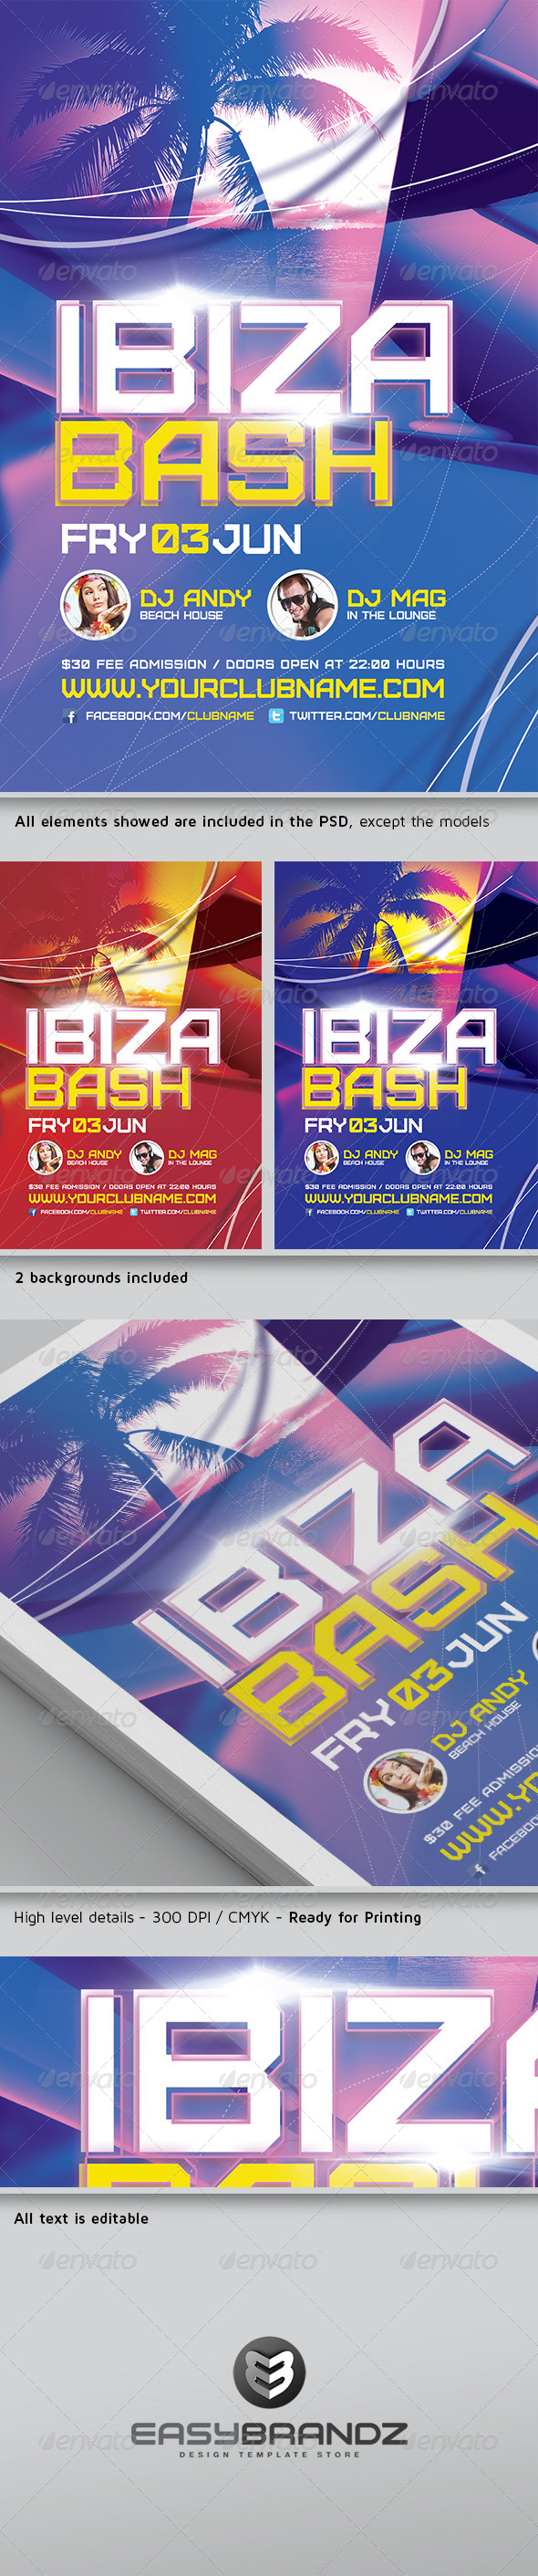 Ibiza Bash Flyer Template - Events Flyers